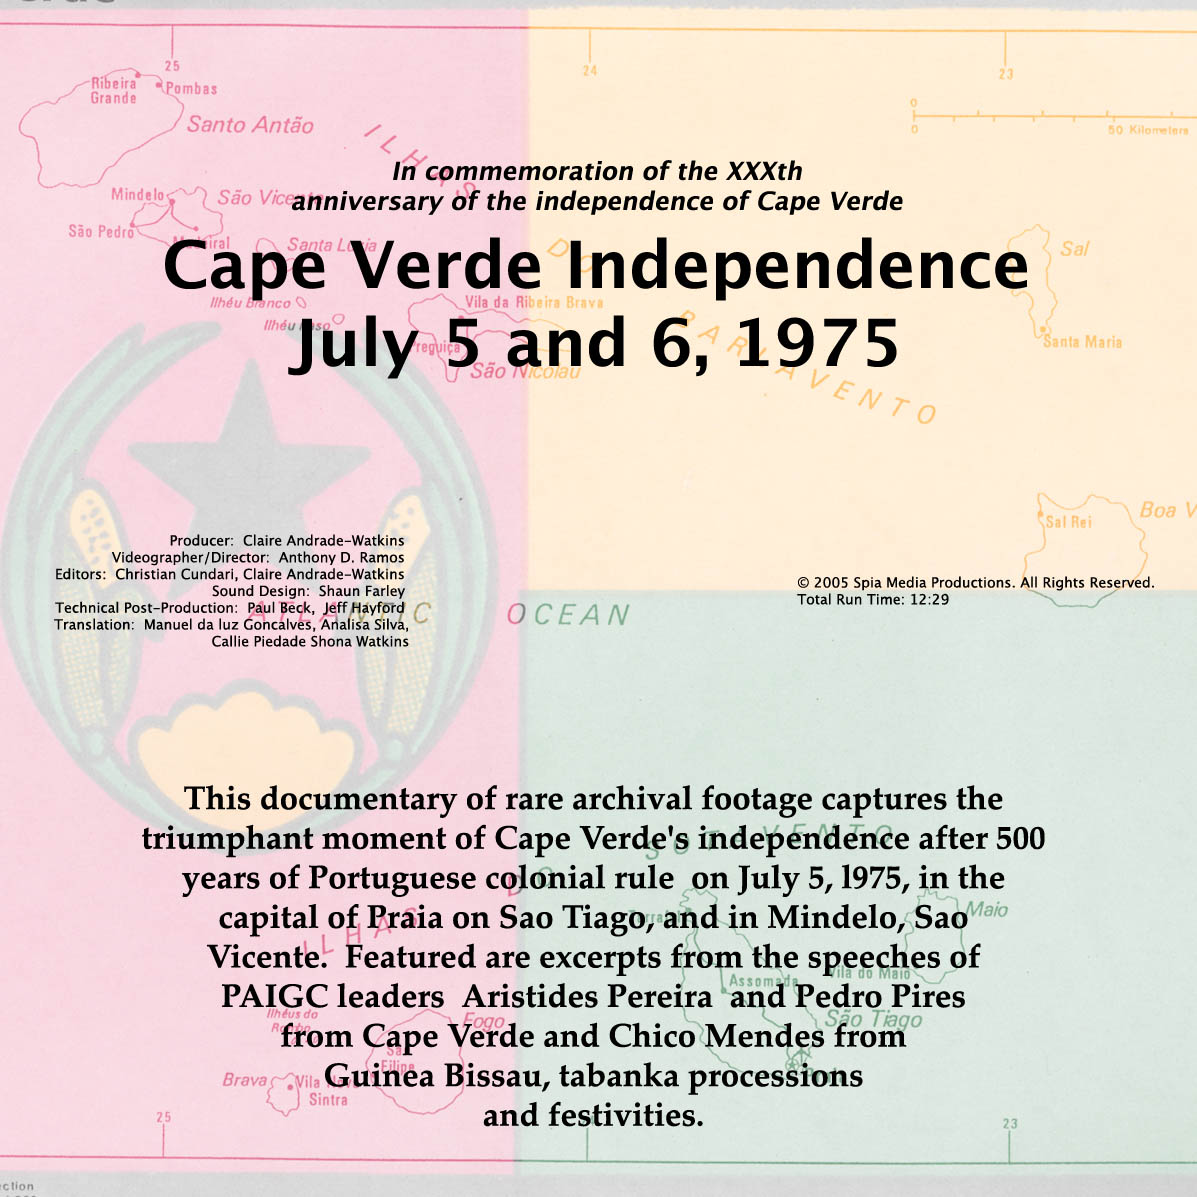 ... Verde Independence July 5 and 6, 1975 (2005)